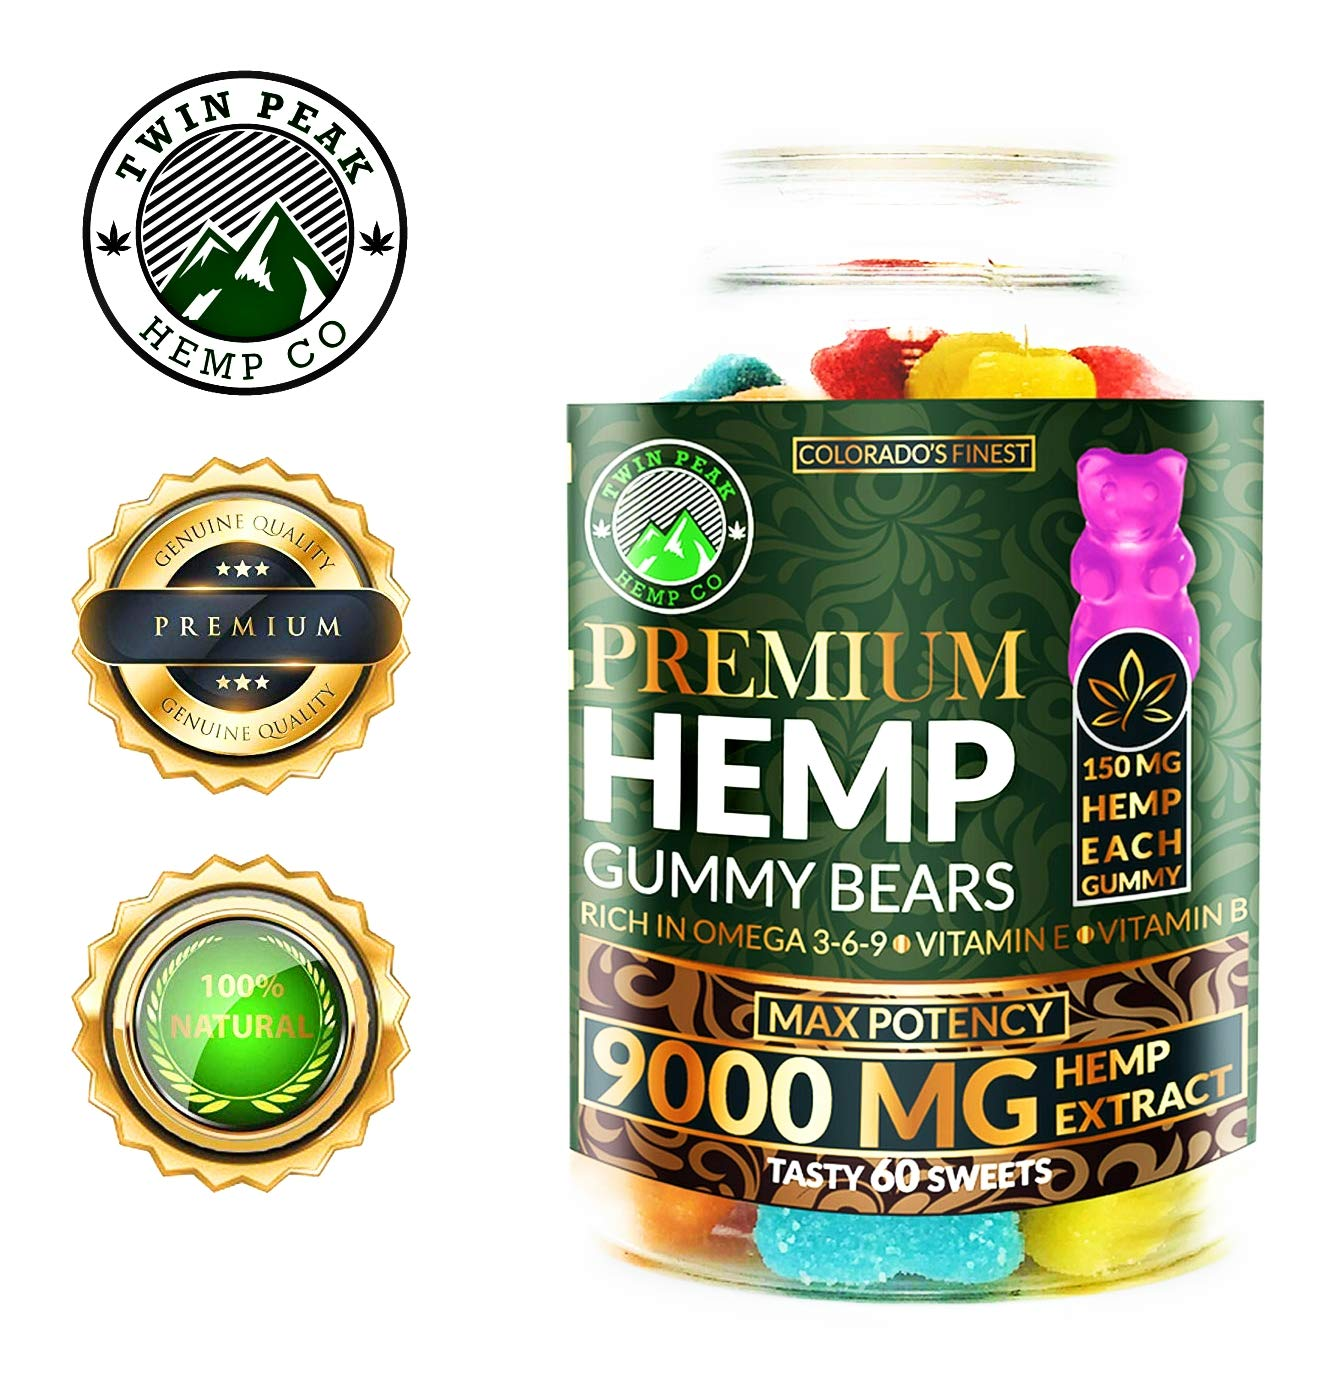 Hemp Gummies Premium 9000 Milligram High Potency – 150 Per Fruity Gummy Bear – Stress Relief, Inflammation, Pain, Restful Sleep, Anxiety, Rich in Omega 3-6-9. Vitamin E and Vitamin B